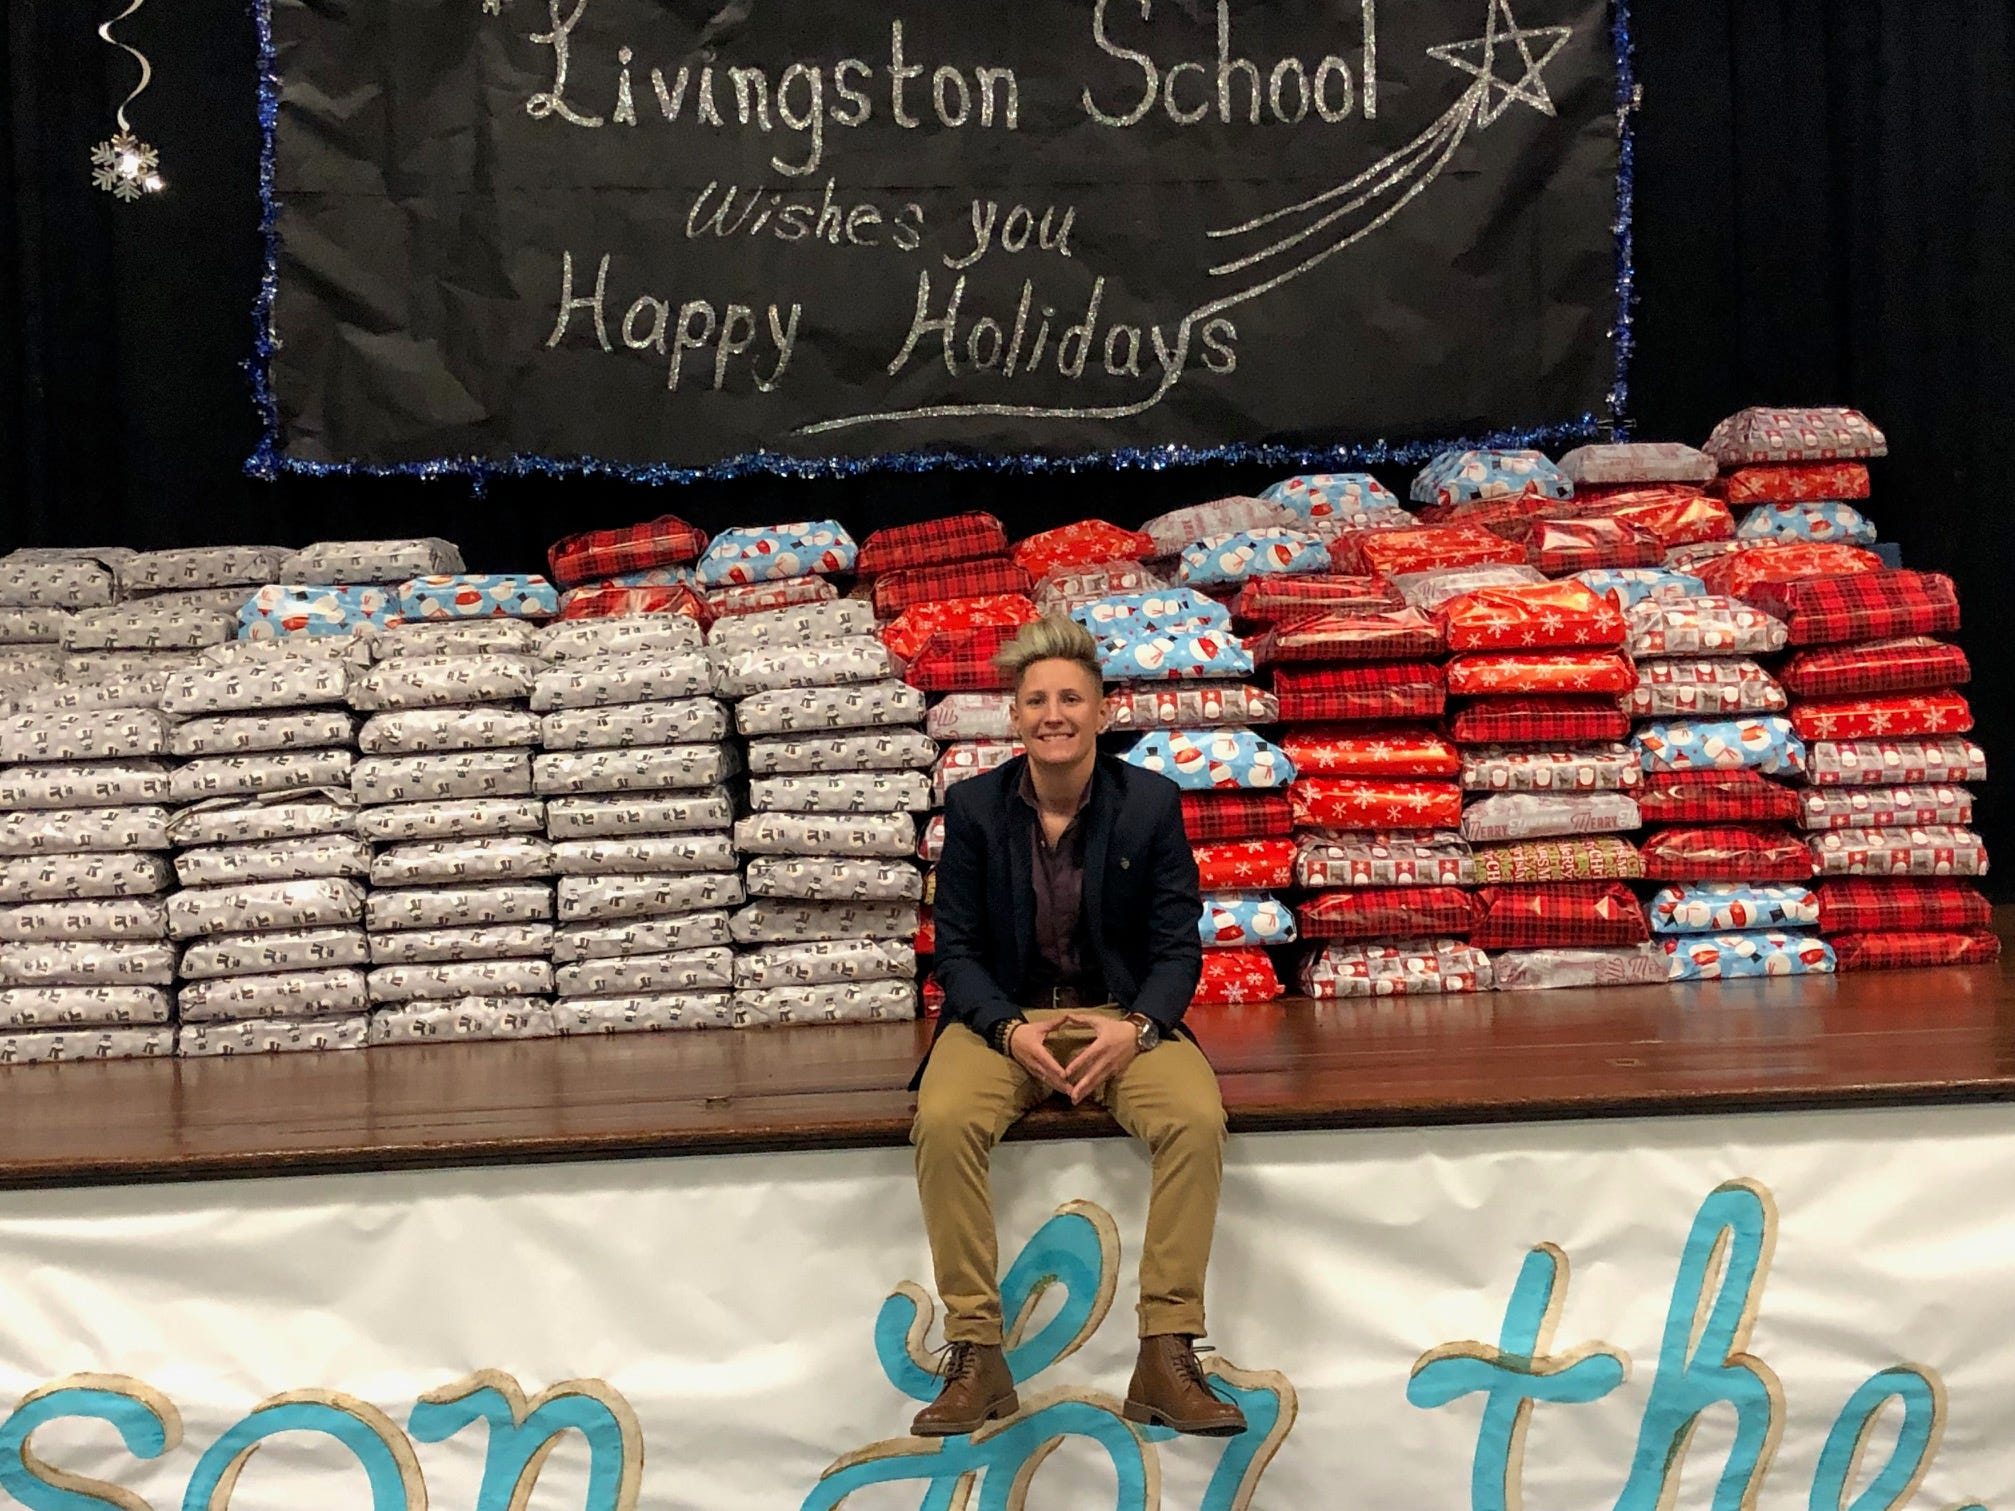 """A Santa Claus of sorts, New Brunswick teacher Jennifer Olawski is ensuring that every single of of her more than 450 students will receive a gift this holiday season. Continuing a program she began in her former school, Olawski, a physical education and health teacher at Livingston Elementary School, created a GoFundMe campaign to raise funds for gifts for the children. This year's effort saw more than $10,000 in donations and the help of many school """"elves."""""""